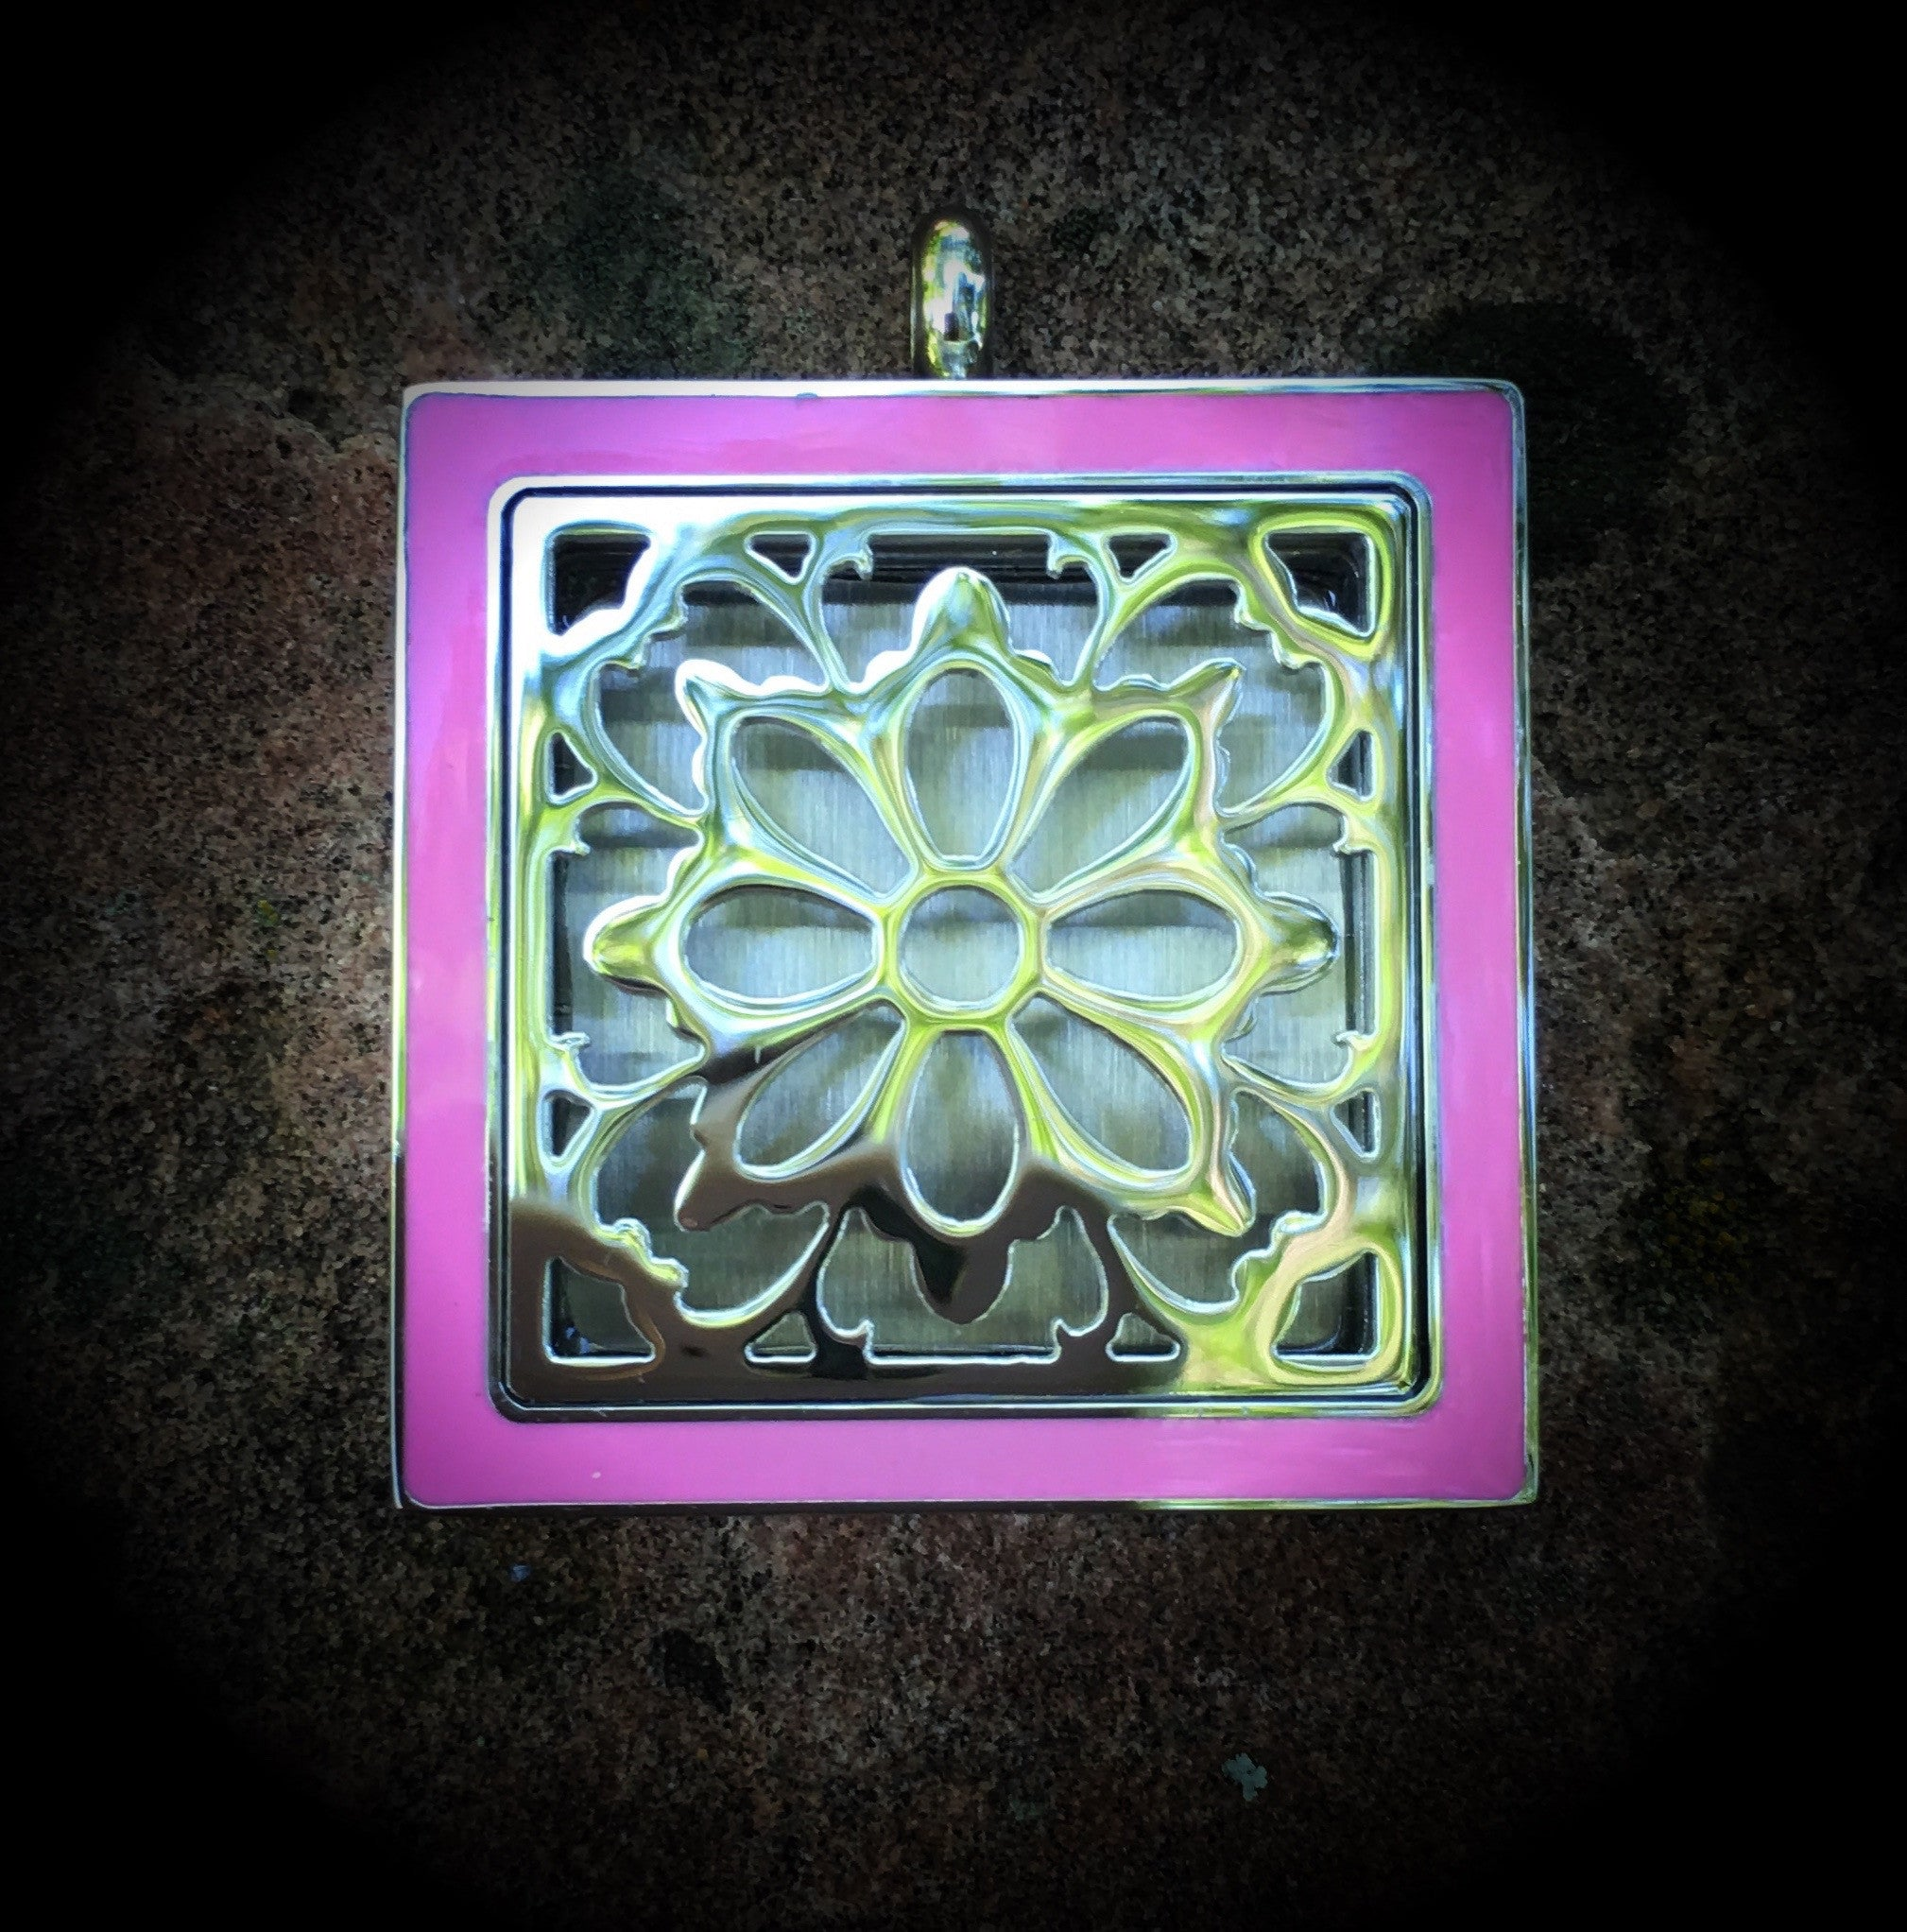 25mm Square Stainless Steel Floral Locket with Pink Overlay